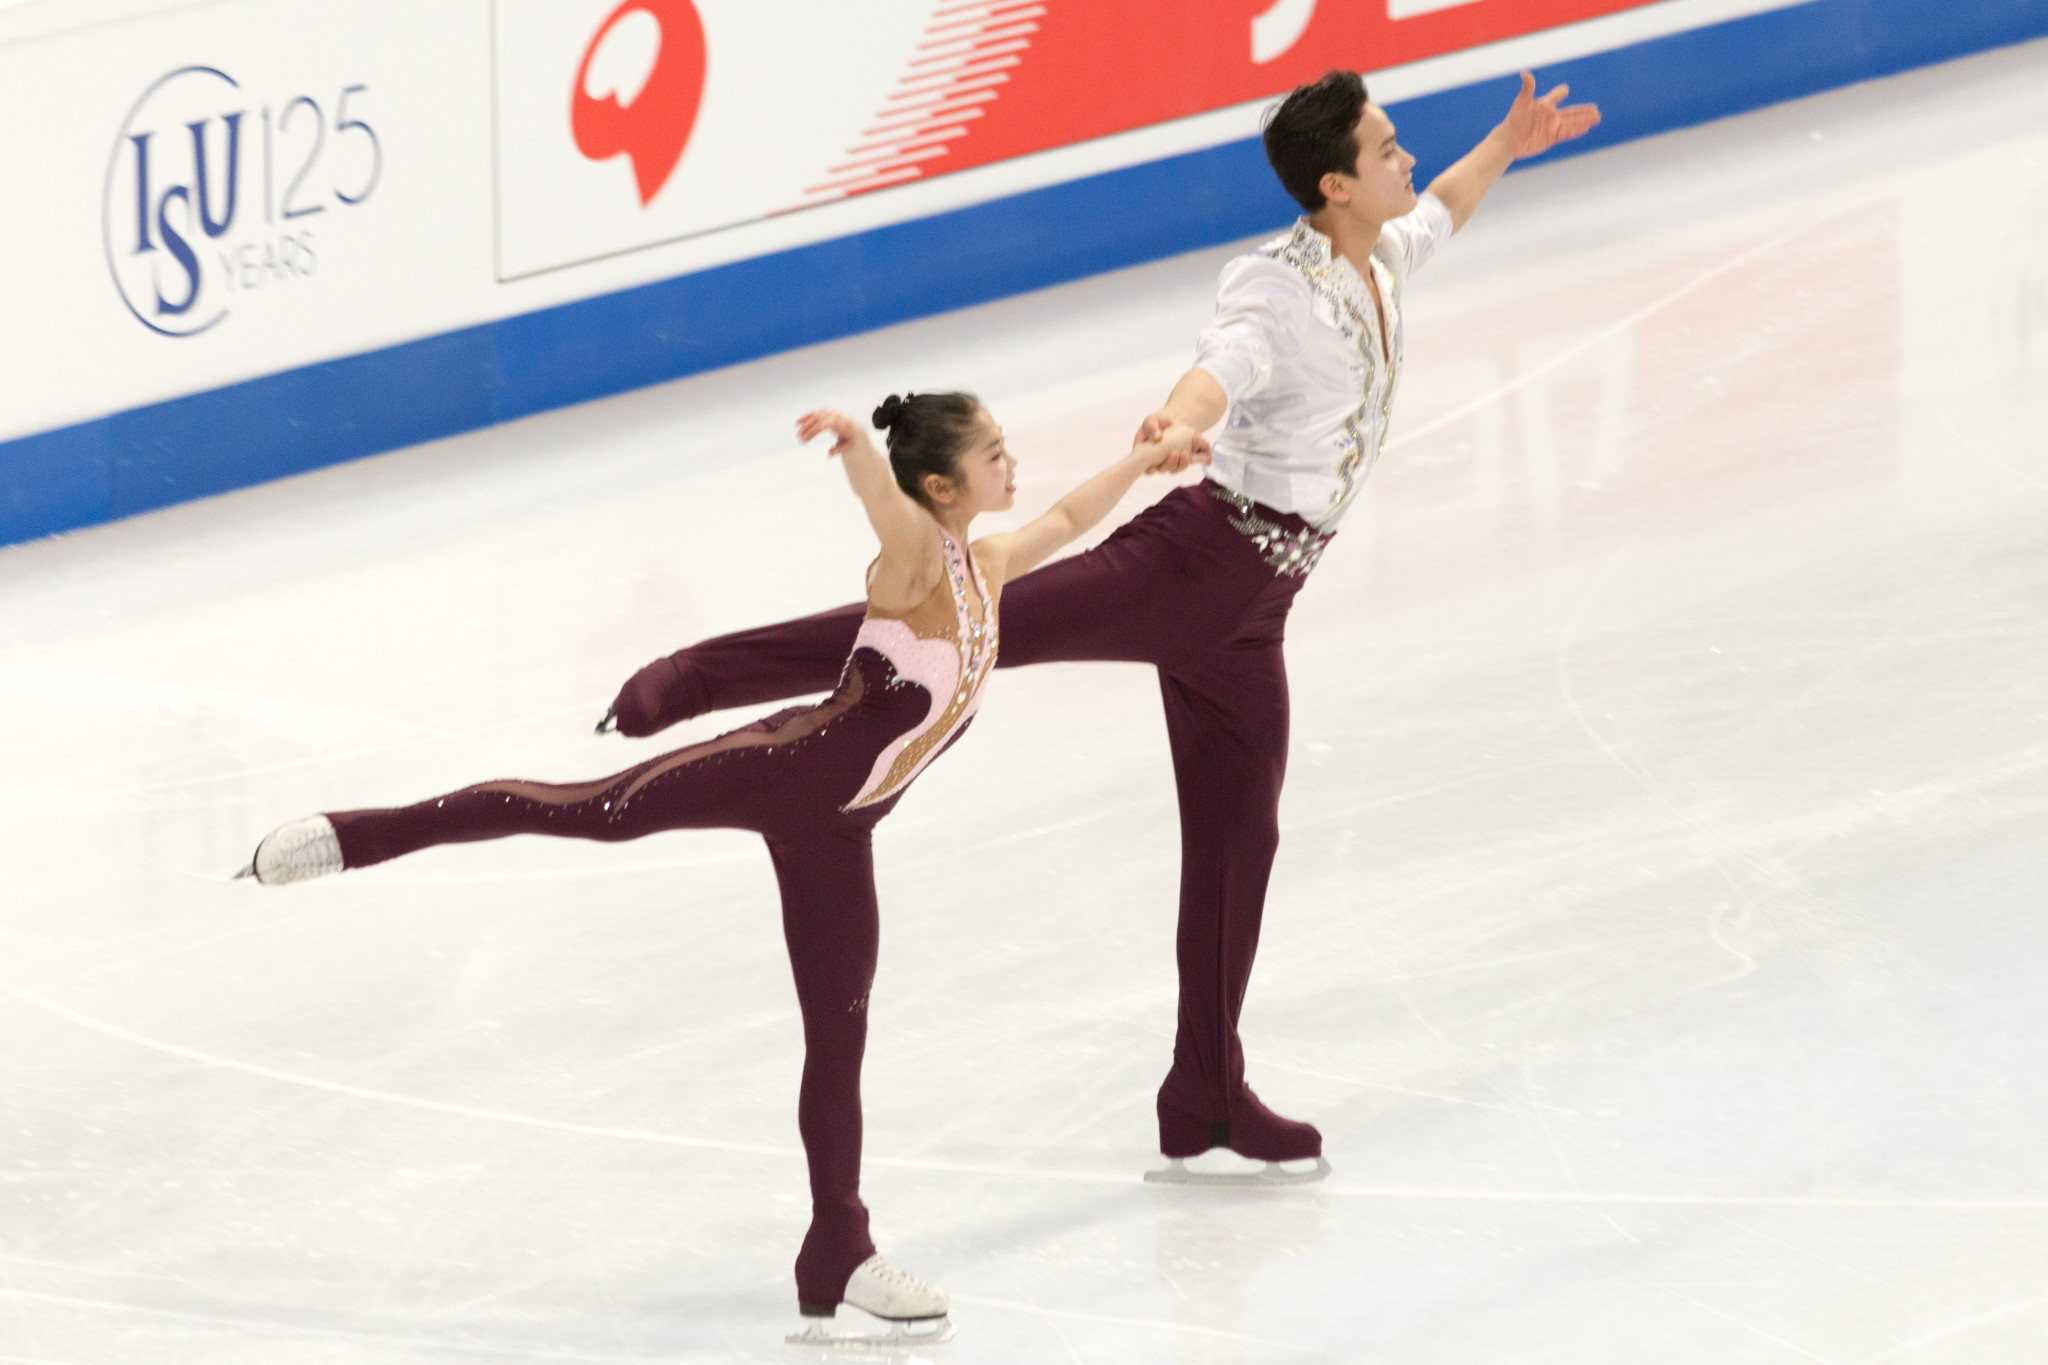 Pairs skaters Ryom Tae-Ok and Kim Ju-Sik are the only North Korean athletes to have qualified automatically for Pyeongchang 2018 but missed a deadline last month to confirm their entry ©YouTube